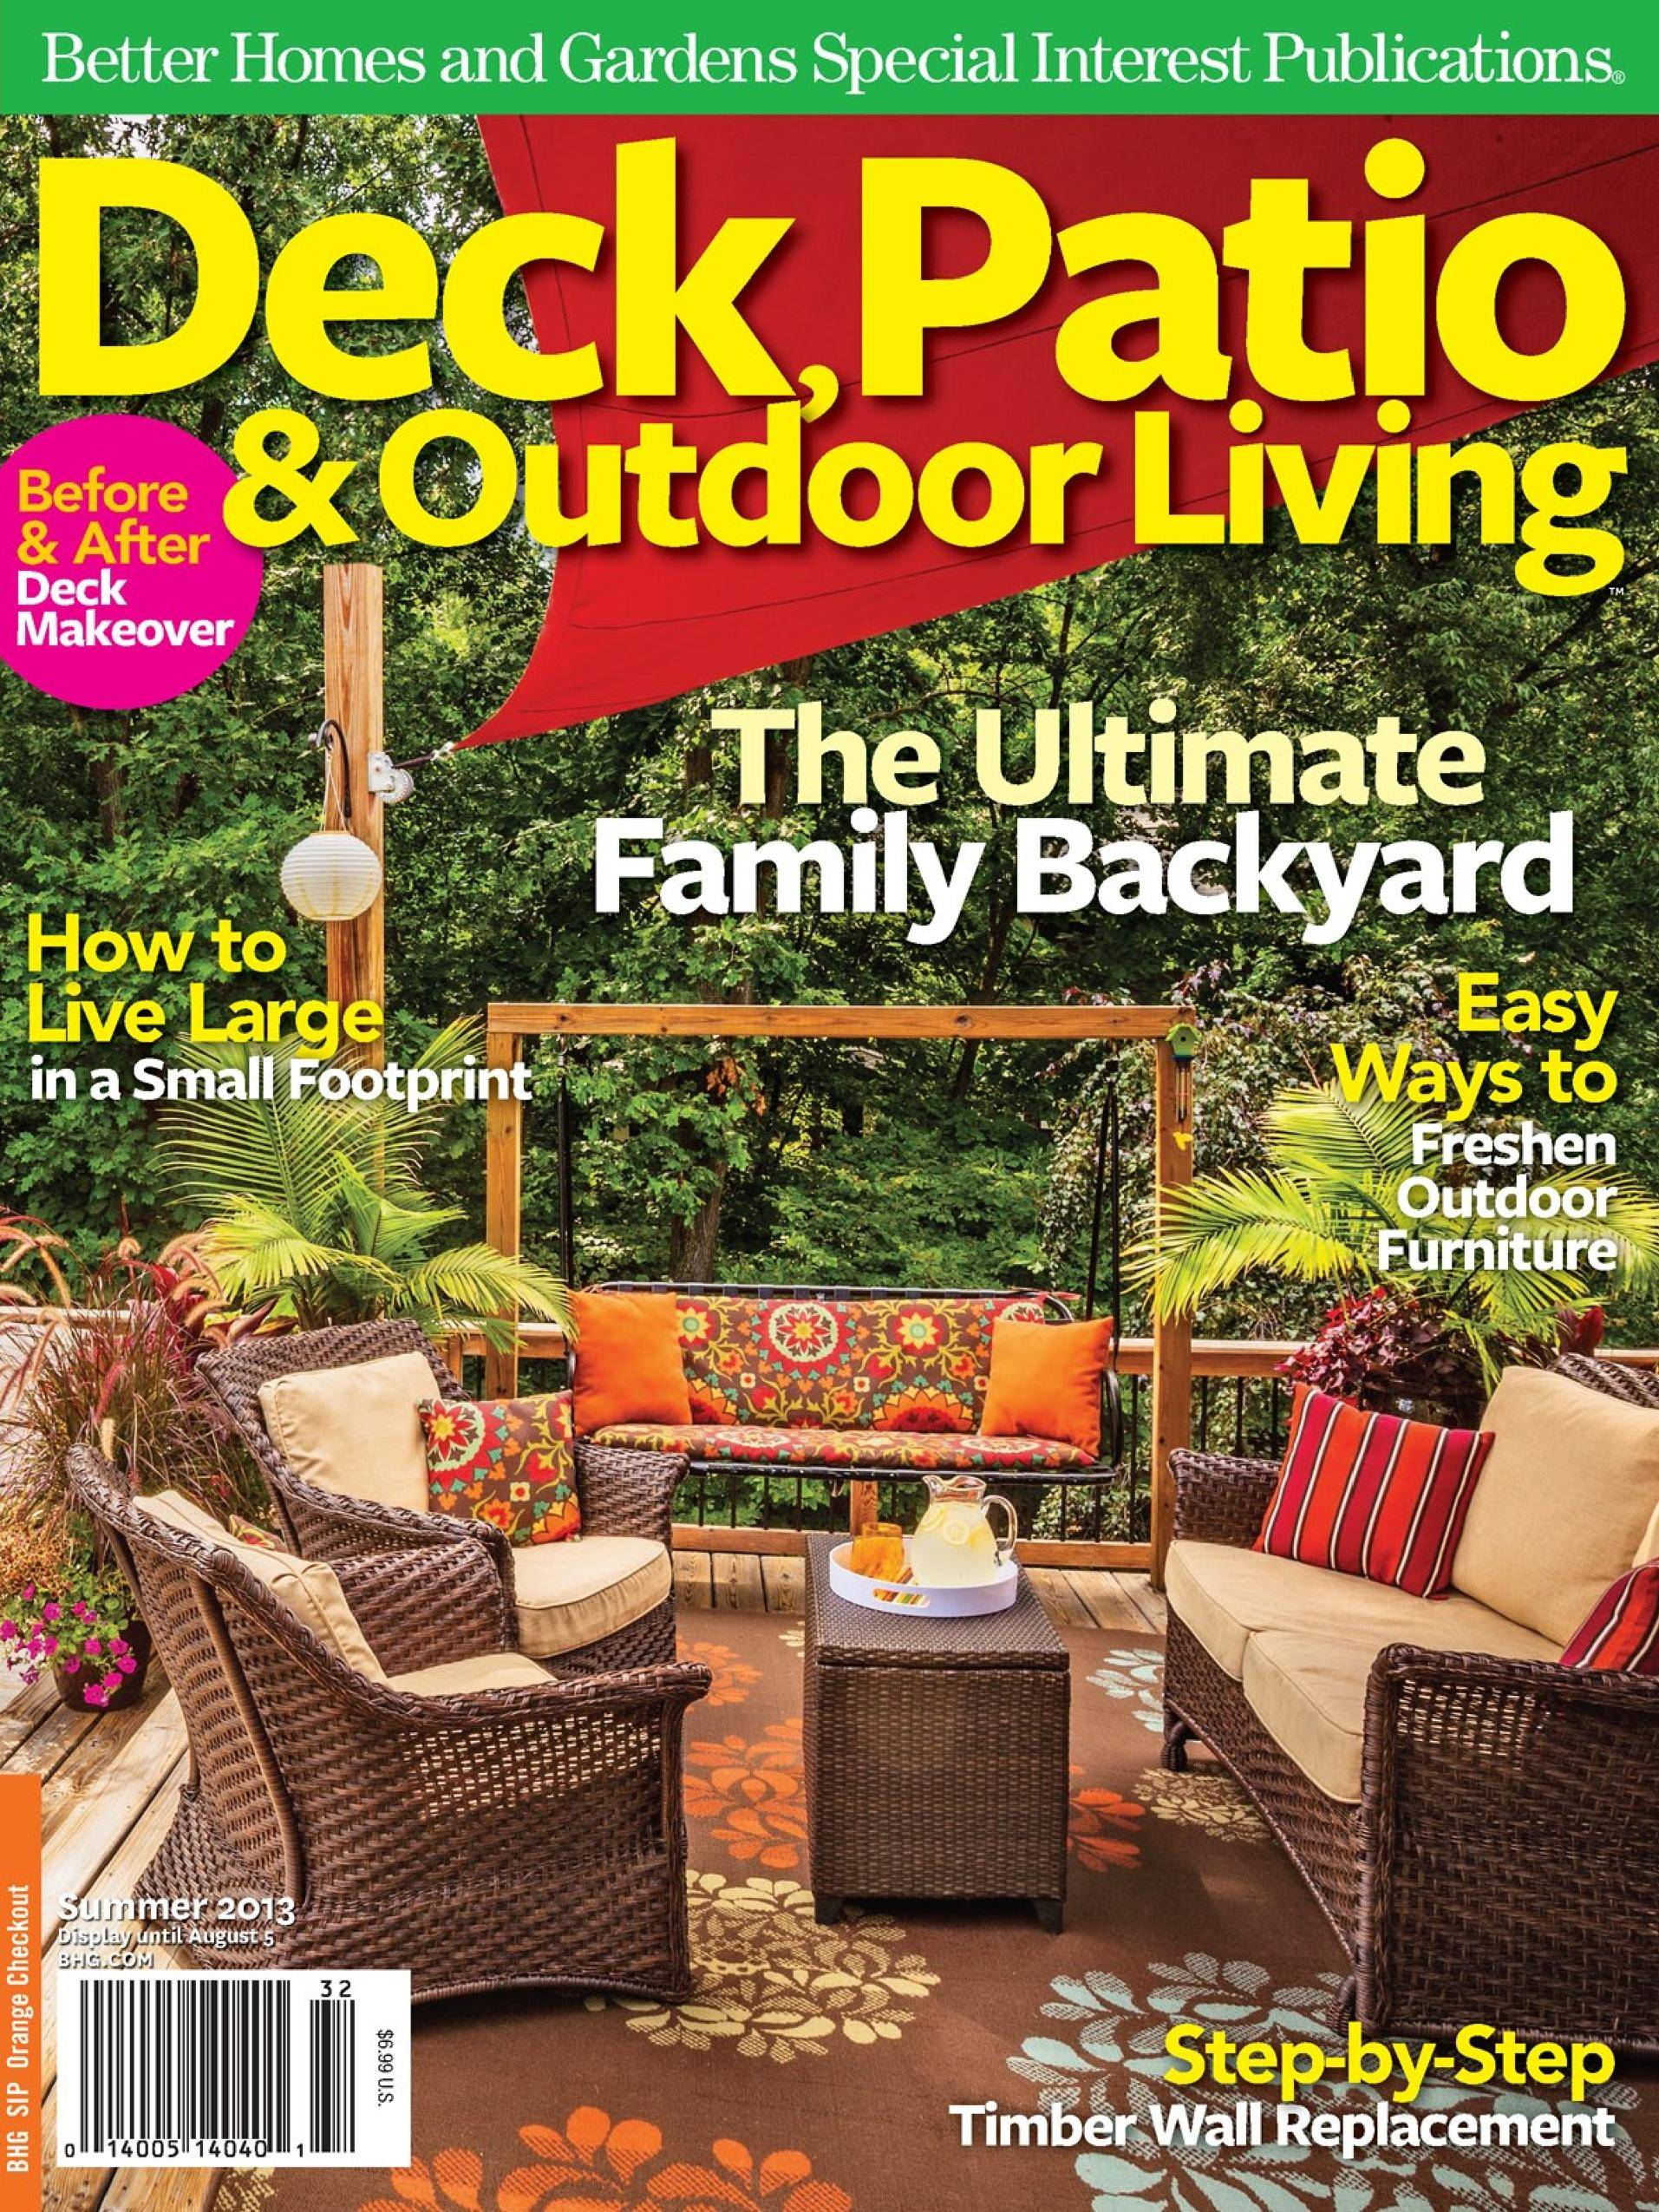 Deck, Patio & Outdoor Living - May 01, 2013